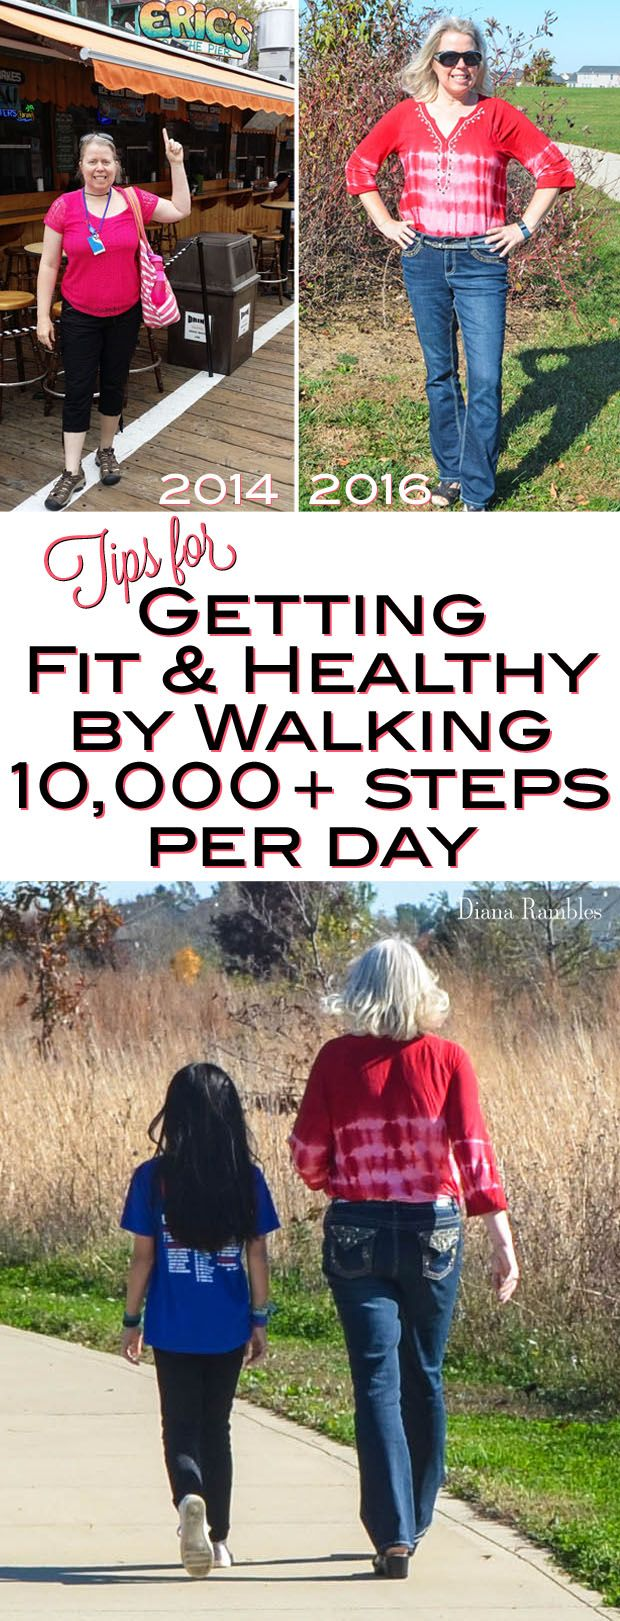 TIps for Getting Fit and Healthy by Walking 10,000 Steps per Day - Lose weight, look great, feel good, and get endless energy! AD #V8Mornings @walmart @V8